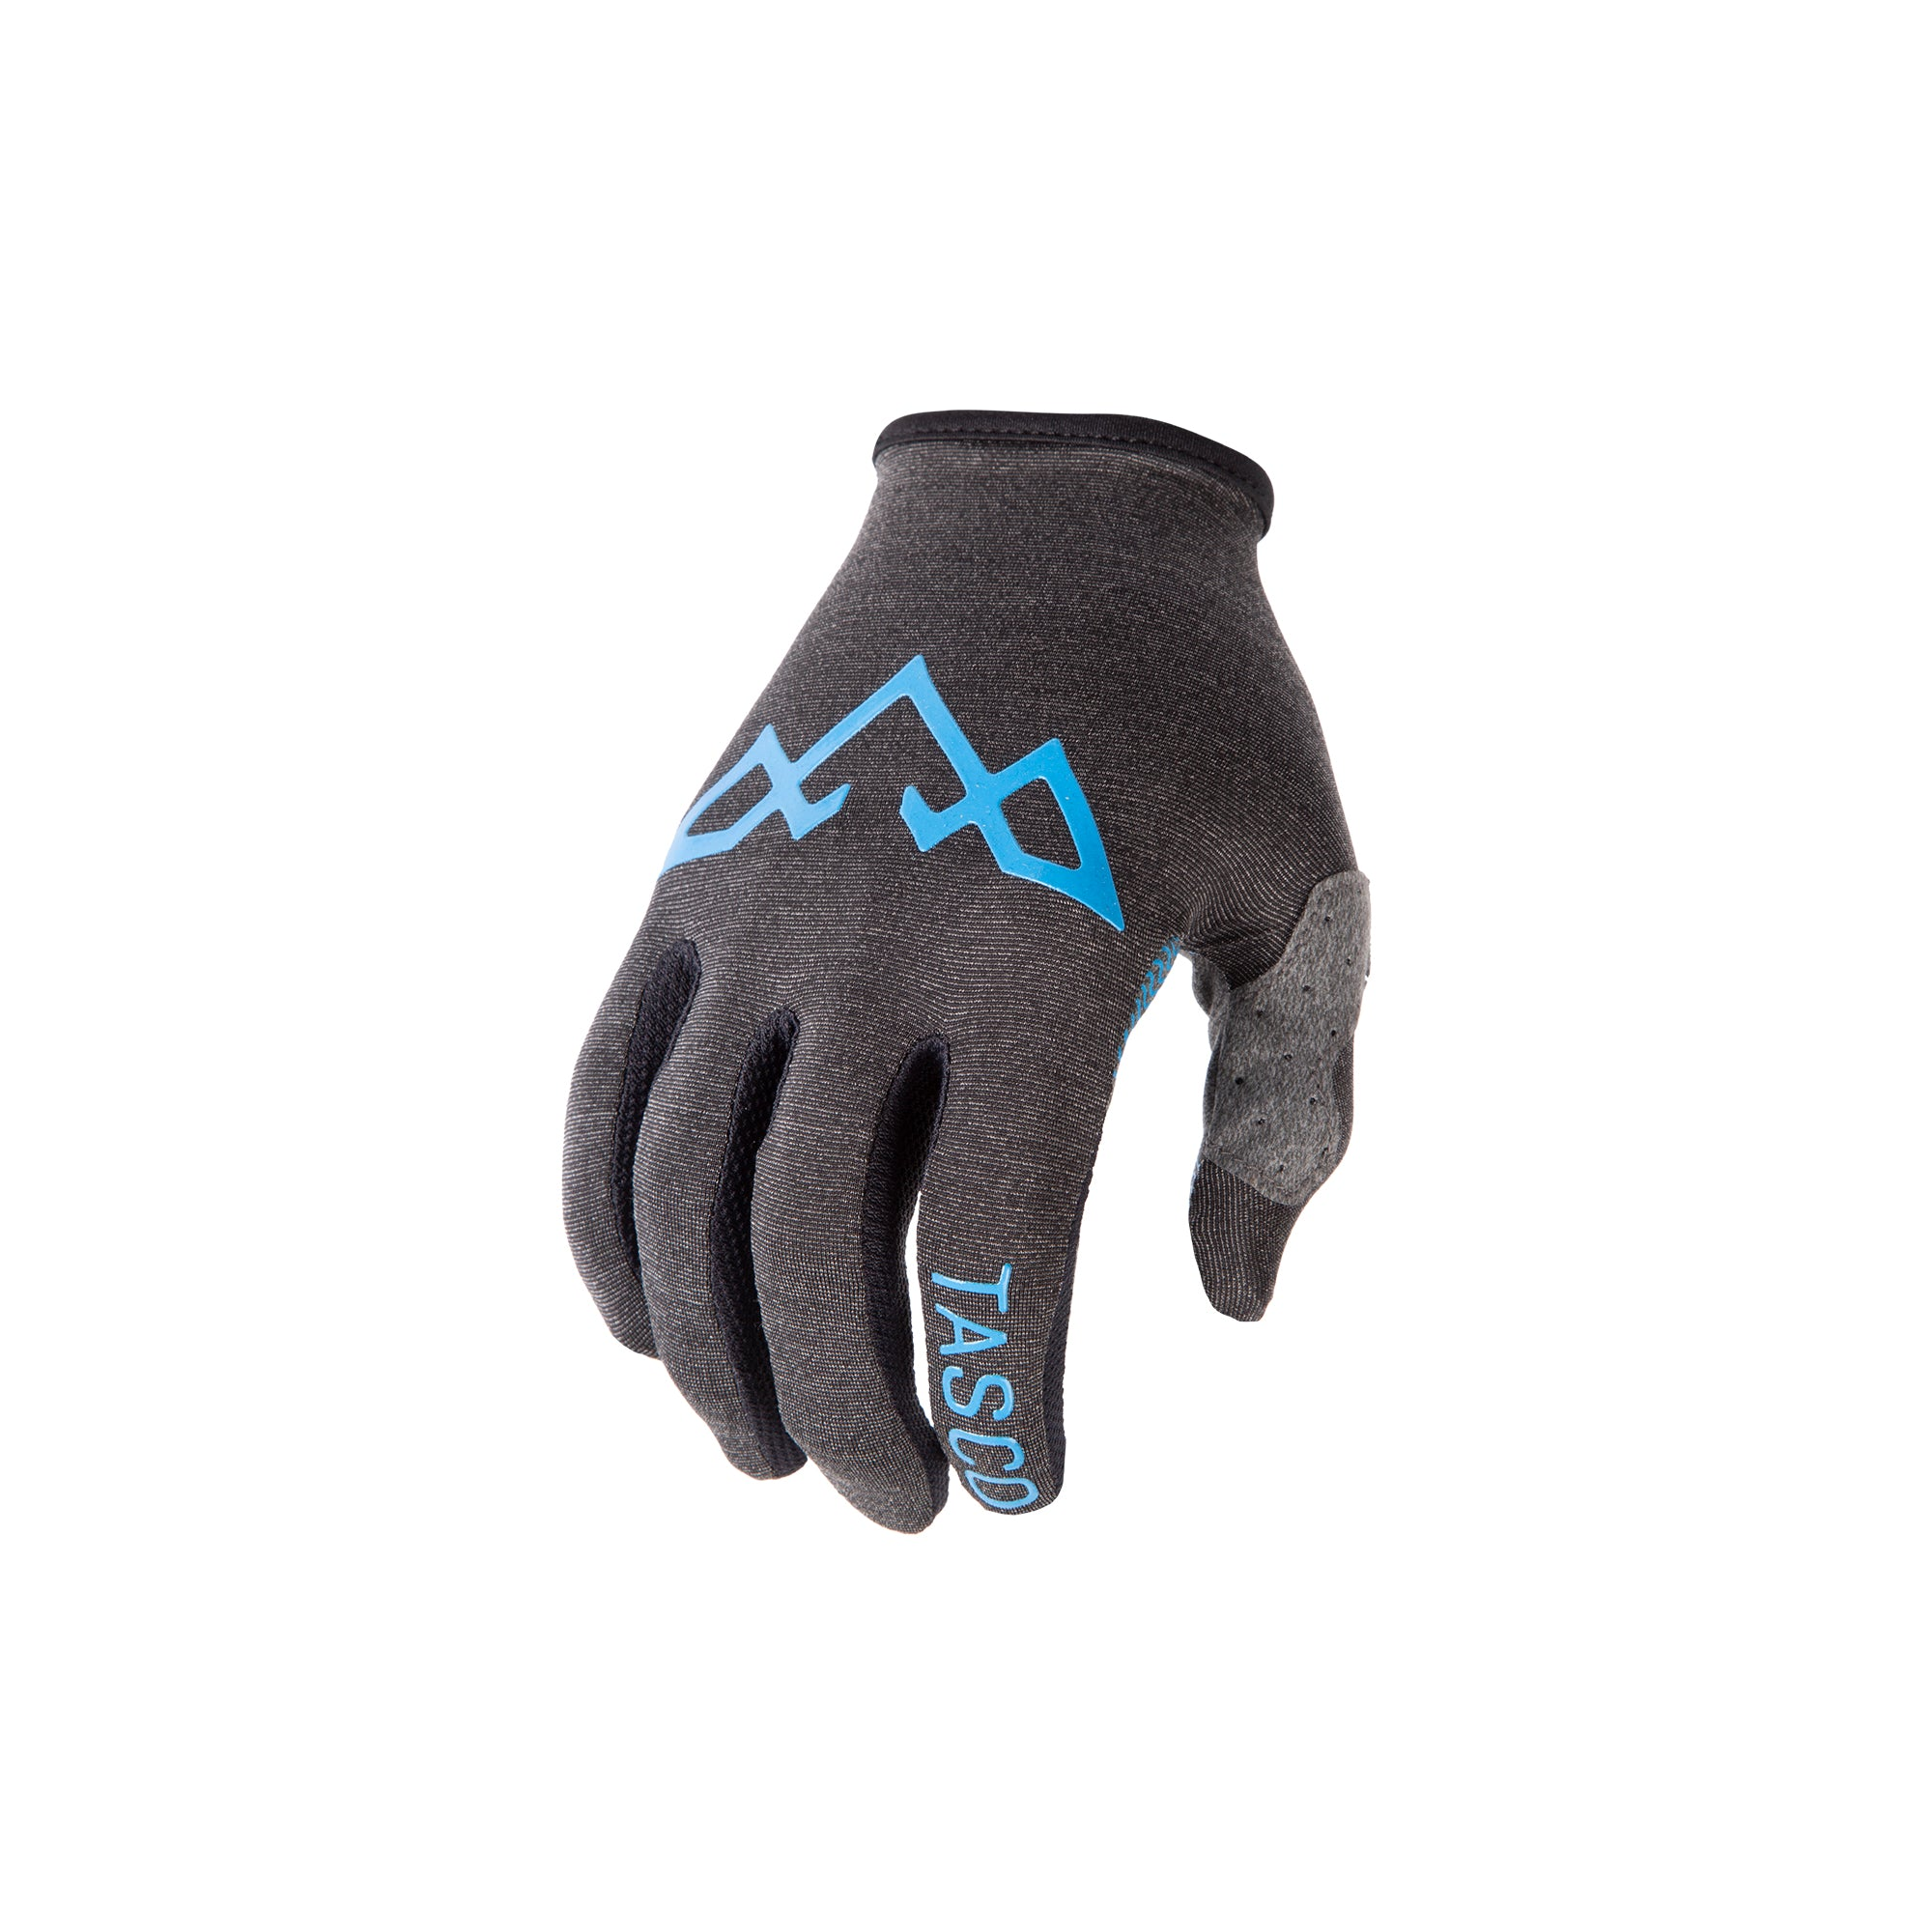 RECON Ultralight Cycling Gloves - Cyan Pop